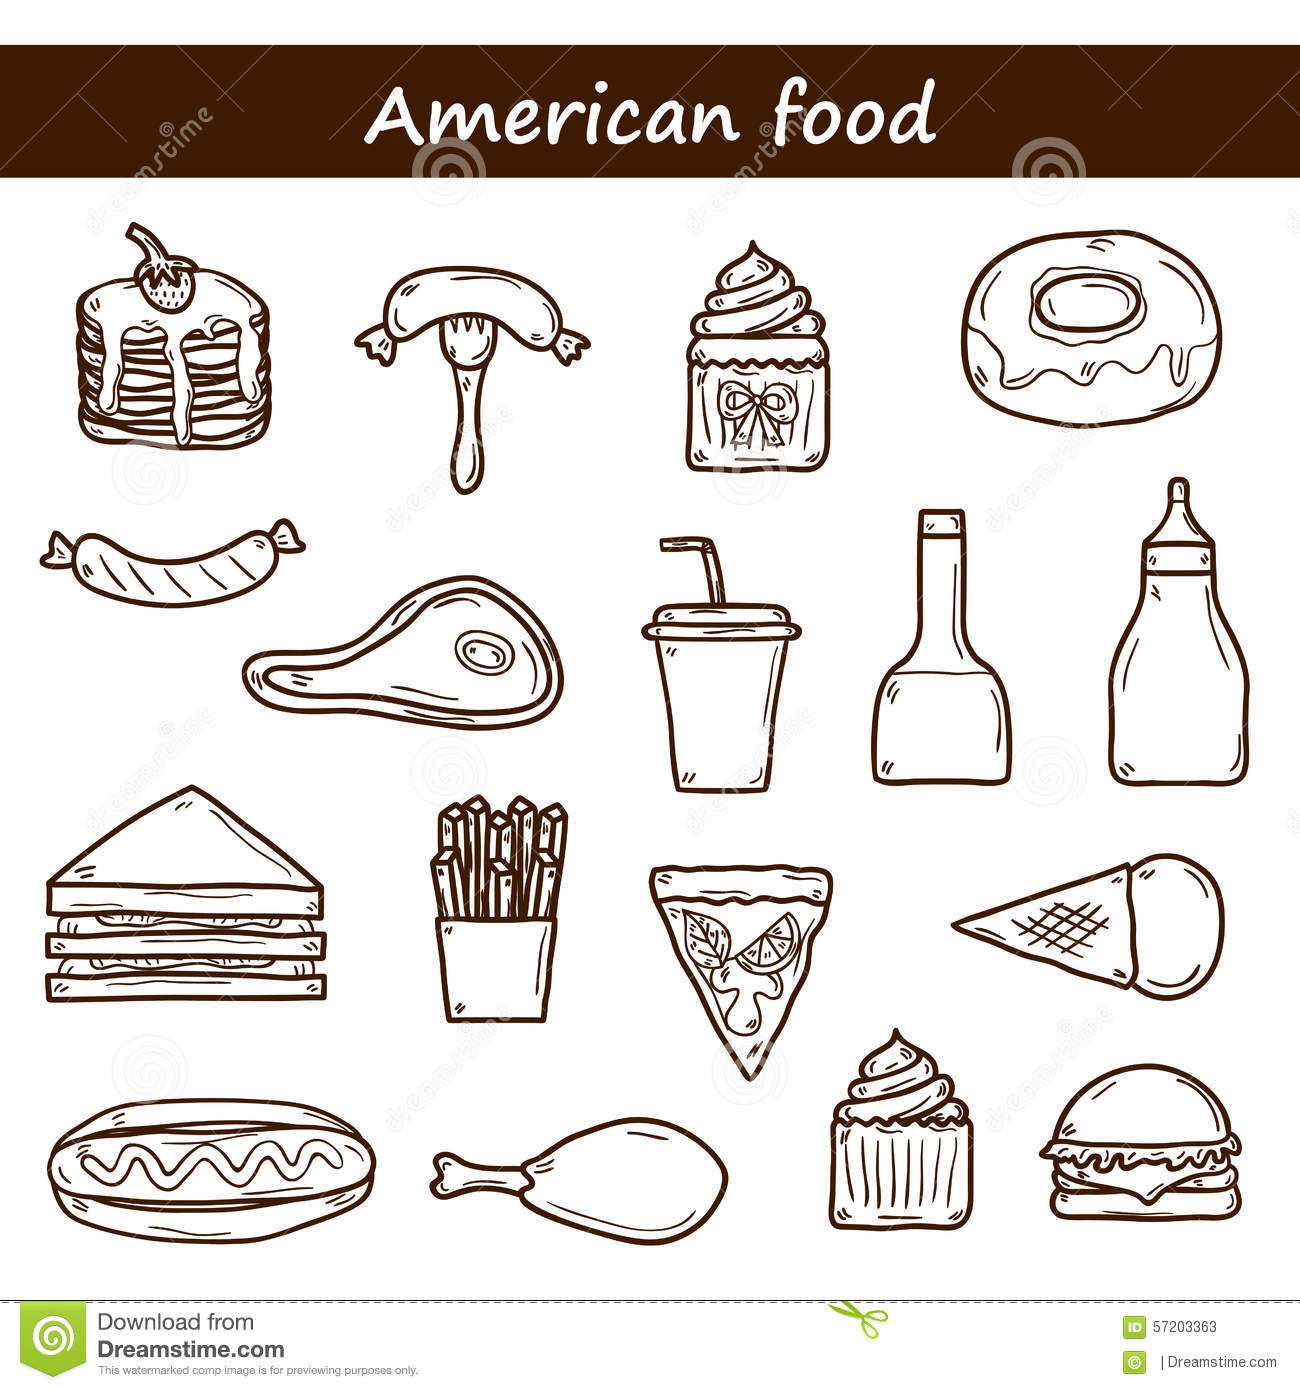 Set of cartoon objects on american food theme